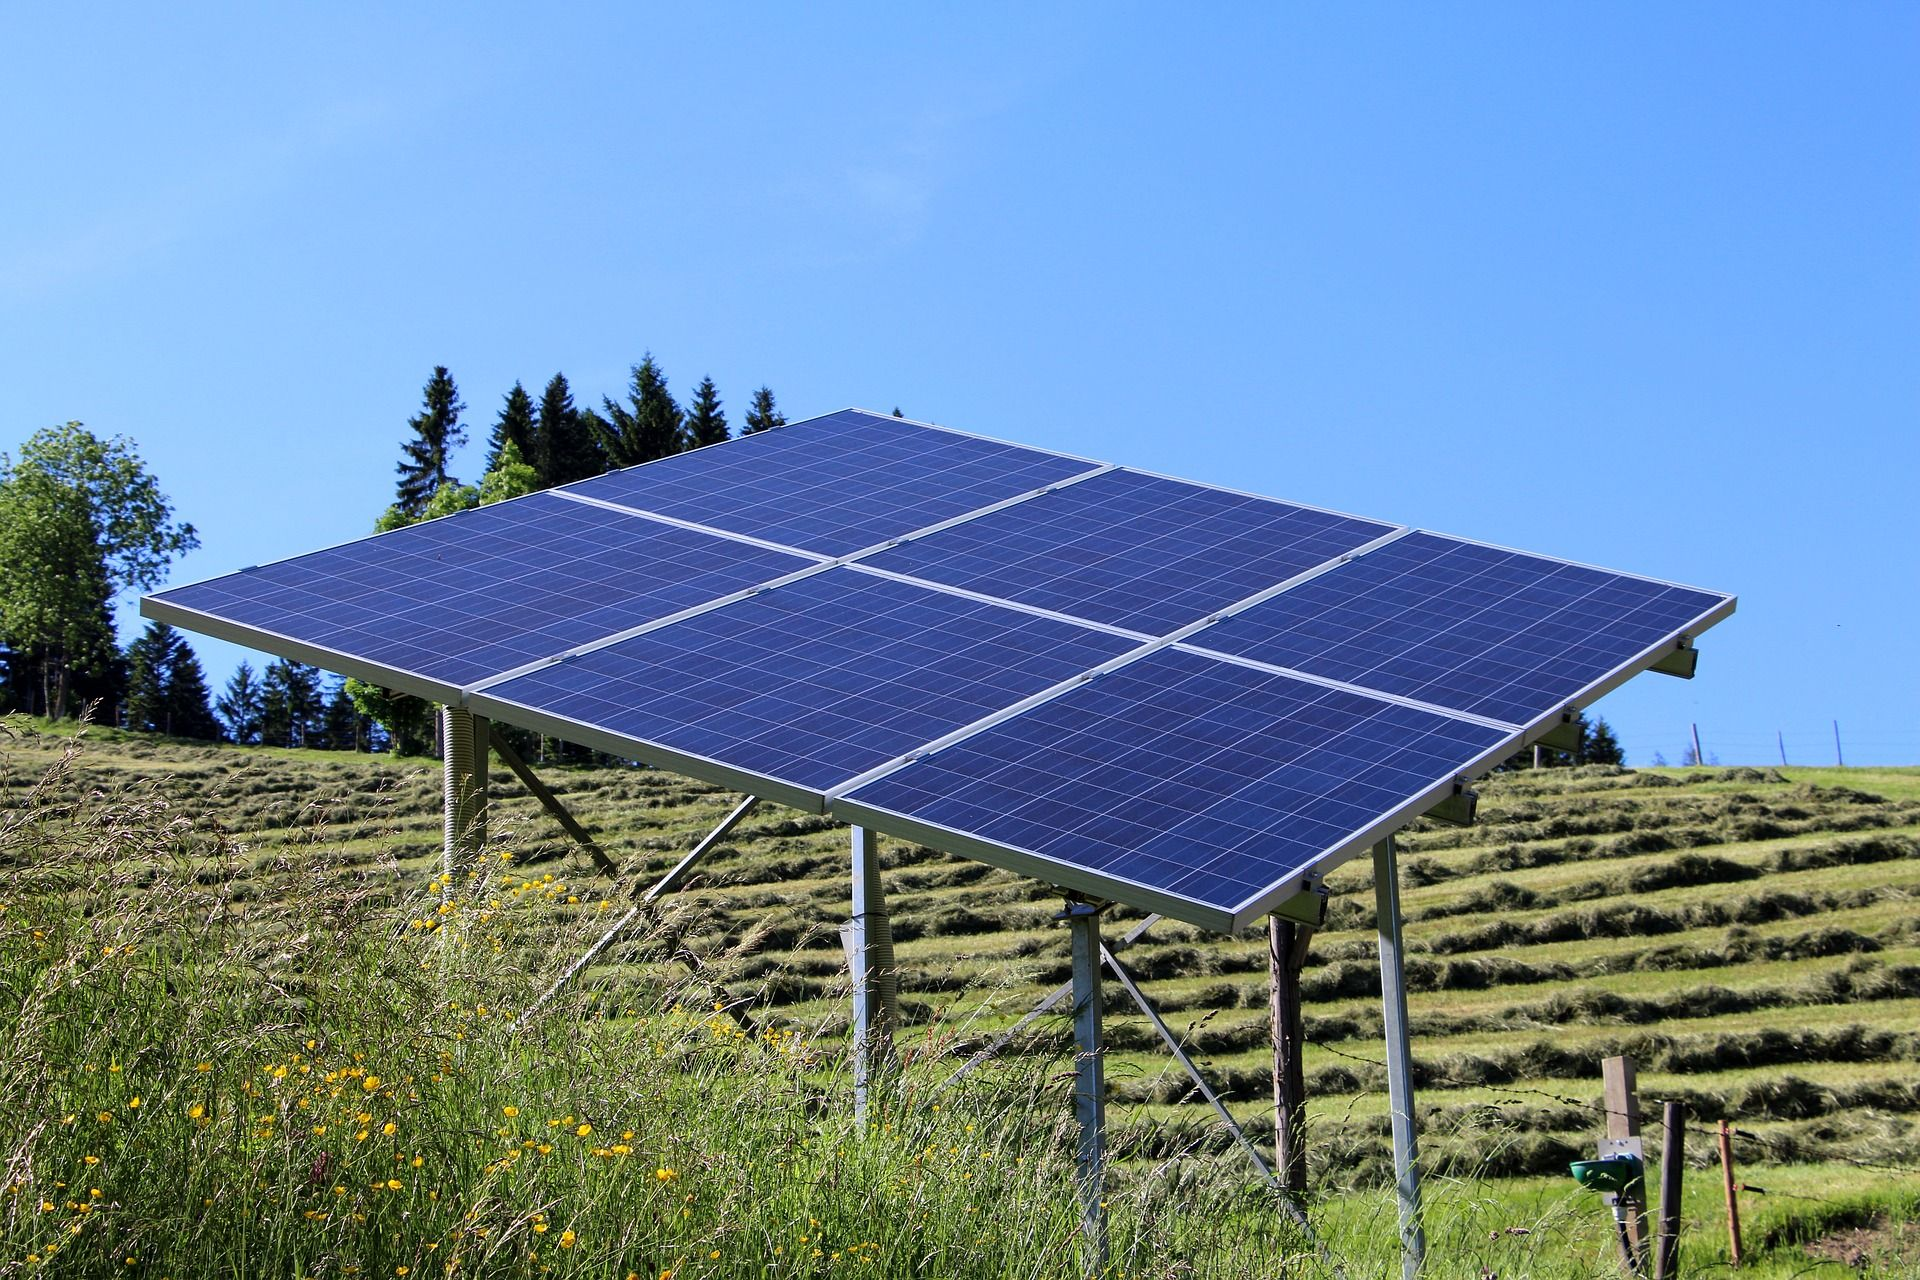 Central Asian Countries Commit To Accelerate The Uptake Of Renewables In The Region Solar Panels Best Solar Panels Buy Solar Panels